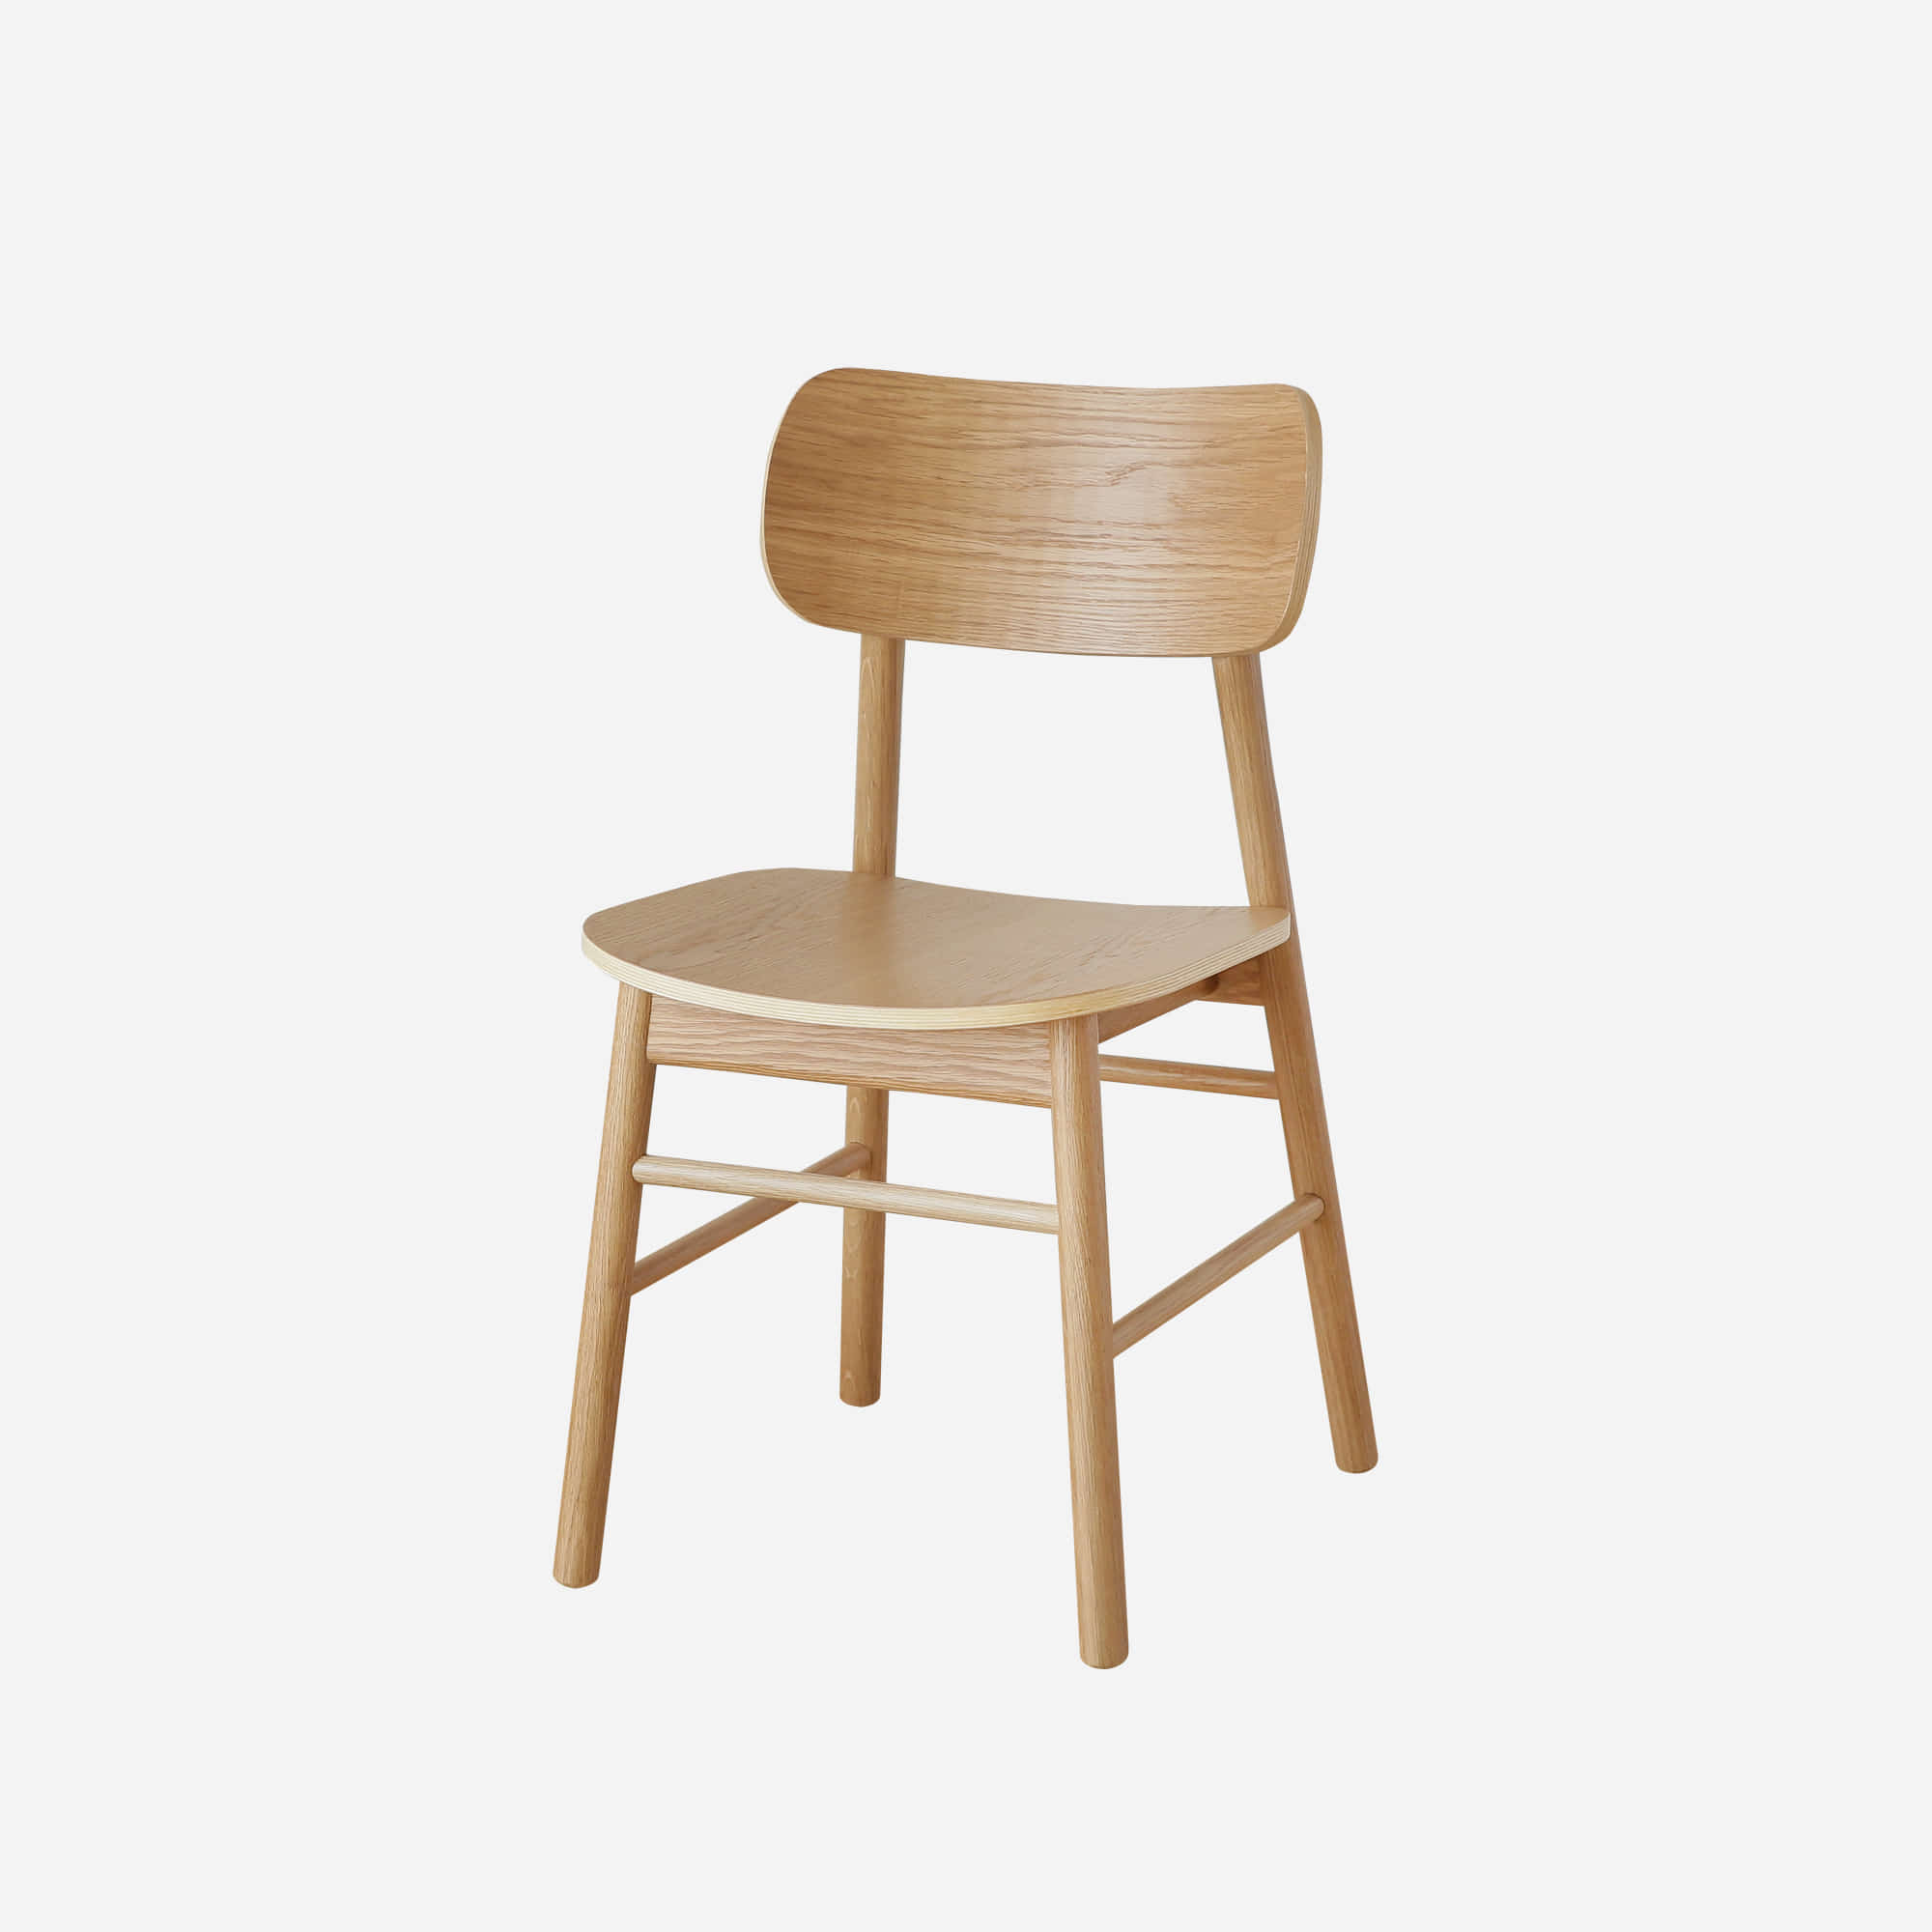 Oblique Stick Leg P2 Chair (manufactured by China)